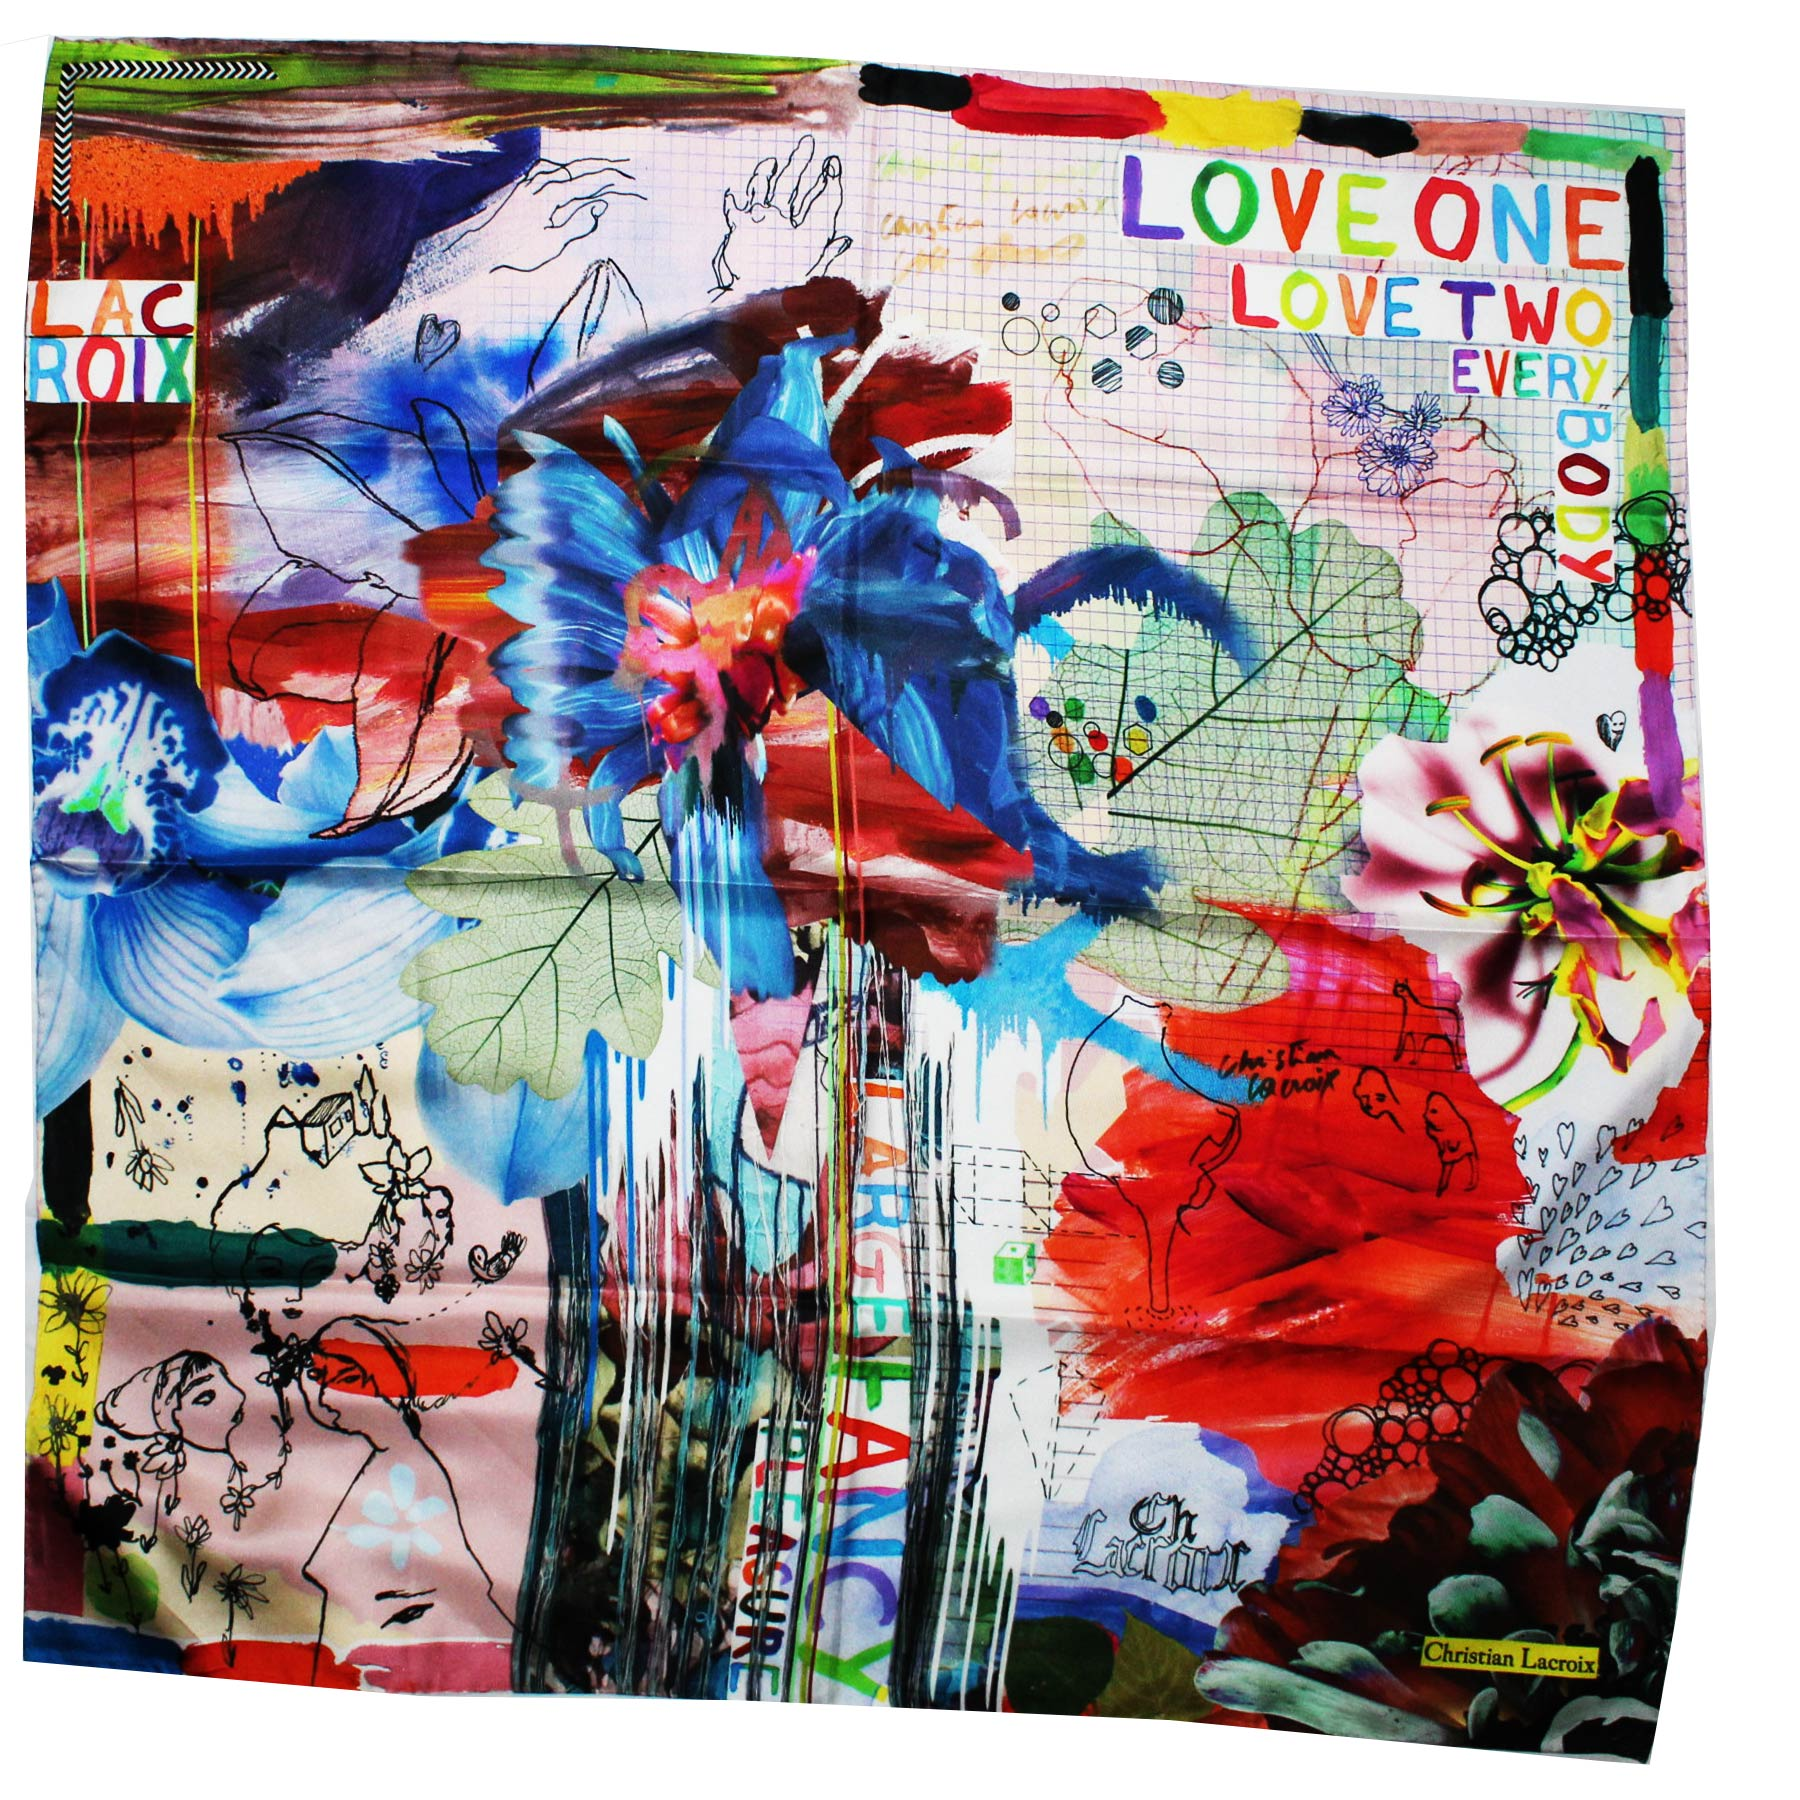 Lacroix Silk Scarf Signature Design